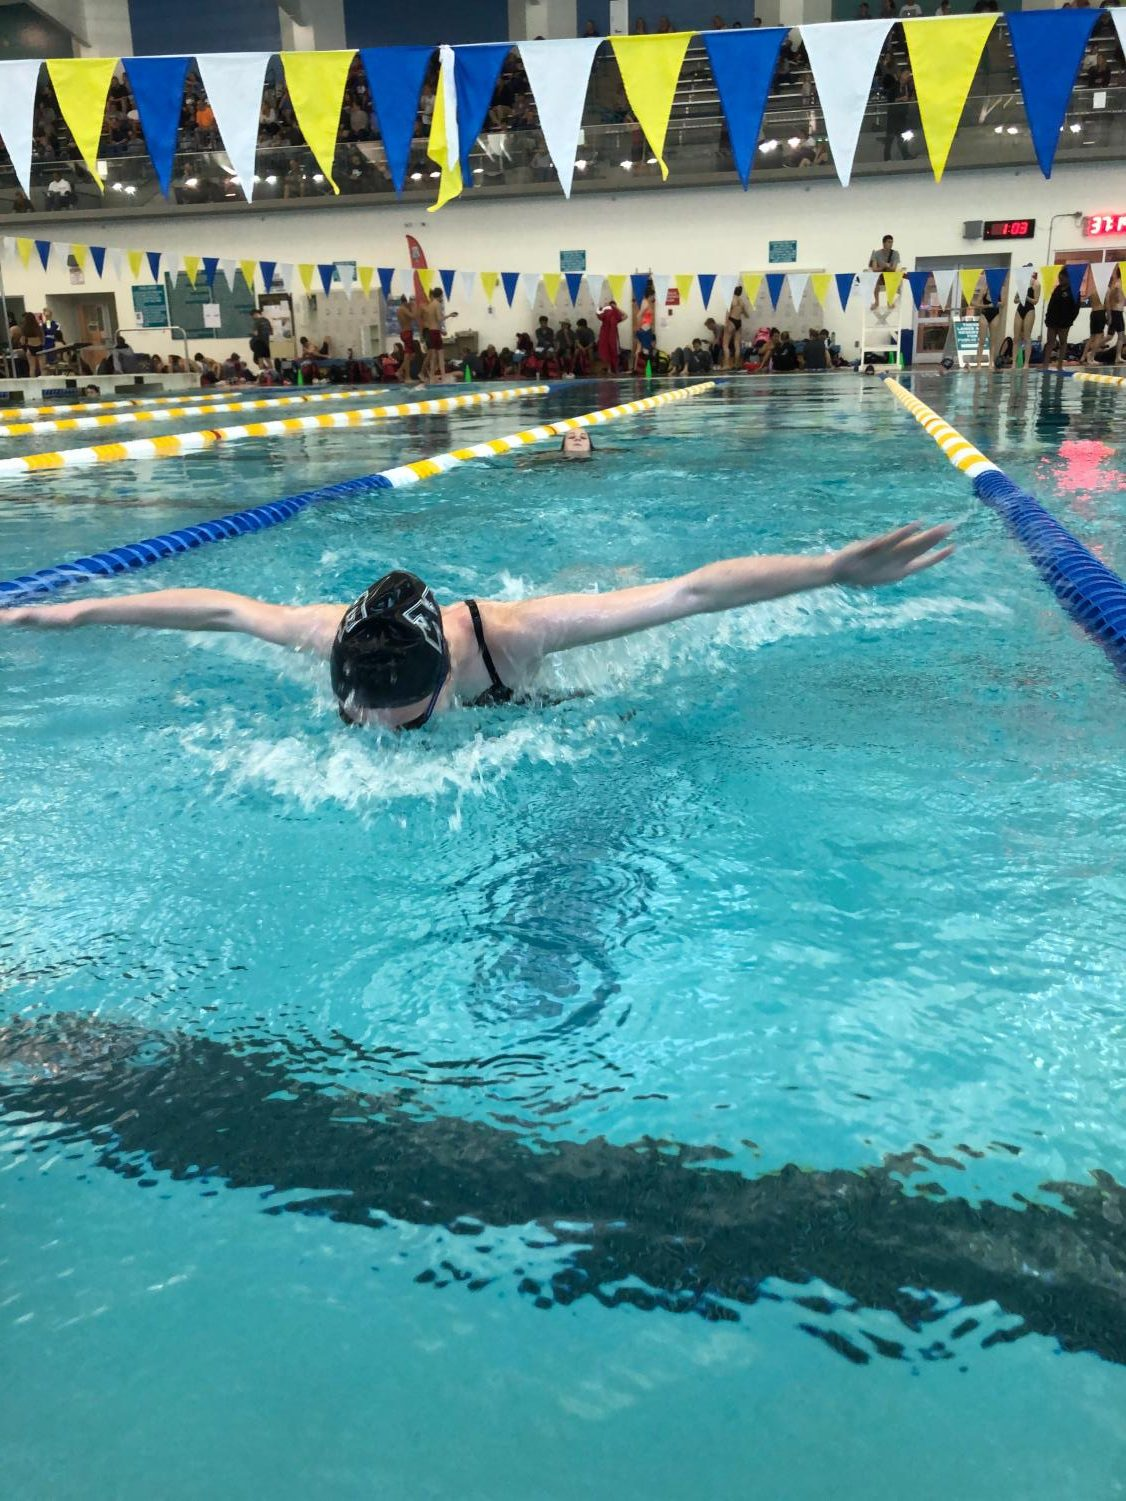 Varsity swimmer Julia Wickman practices her fly in the warm up pool with other freshman Lauren Fields. They each take turns swimming a lap before they swim their next event, the 500 freestyle.